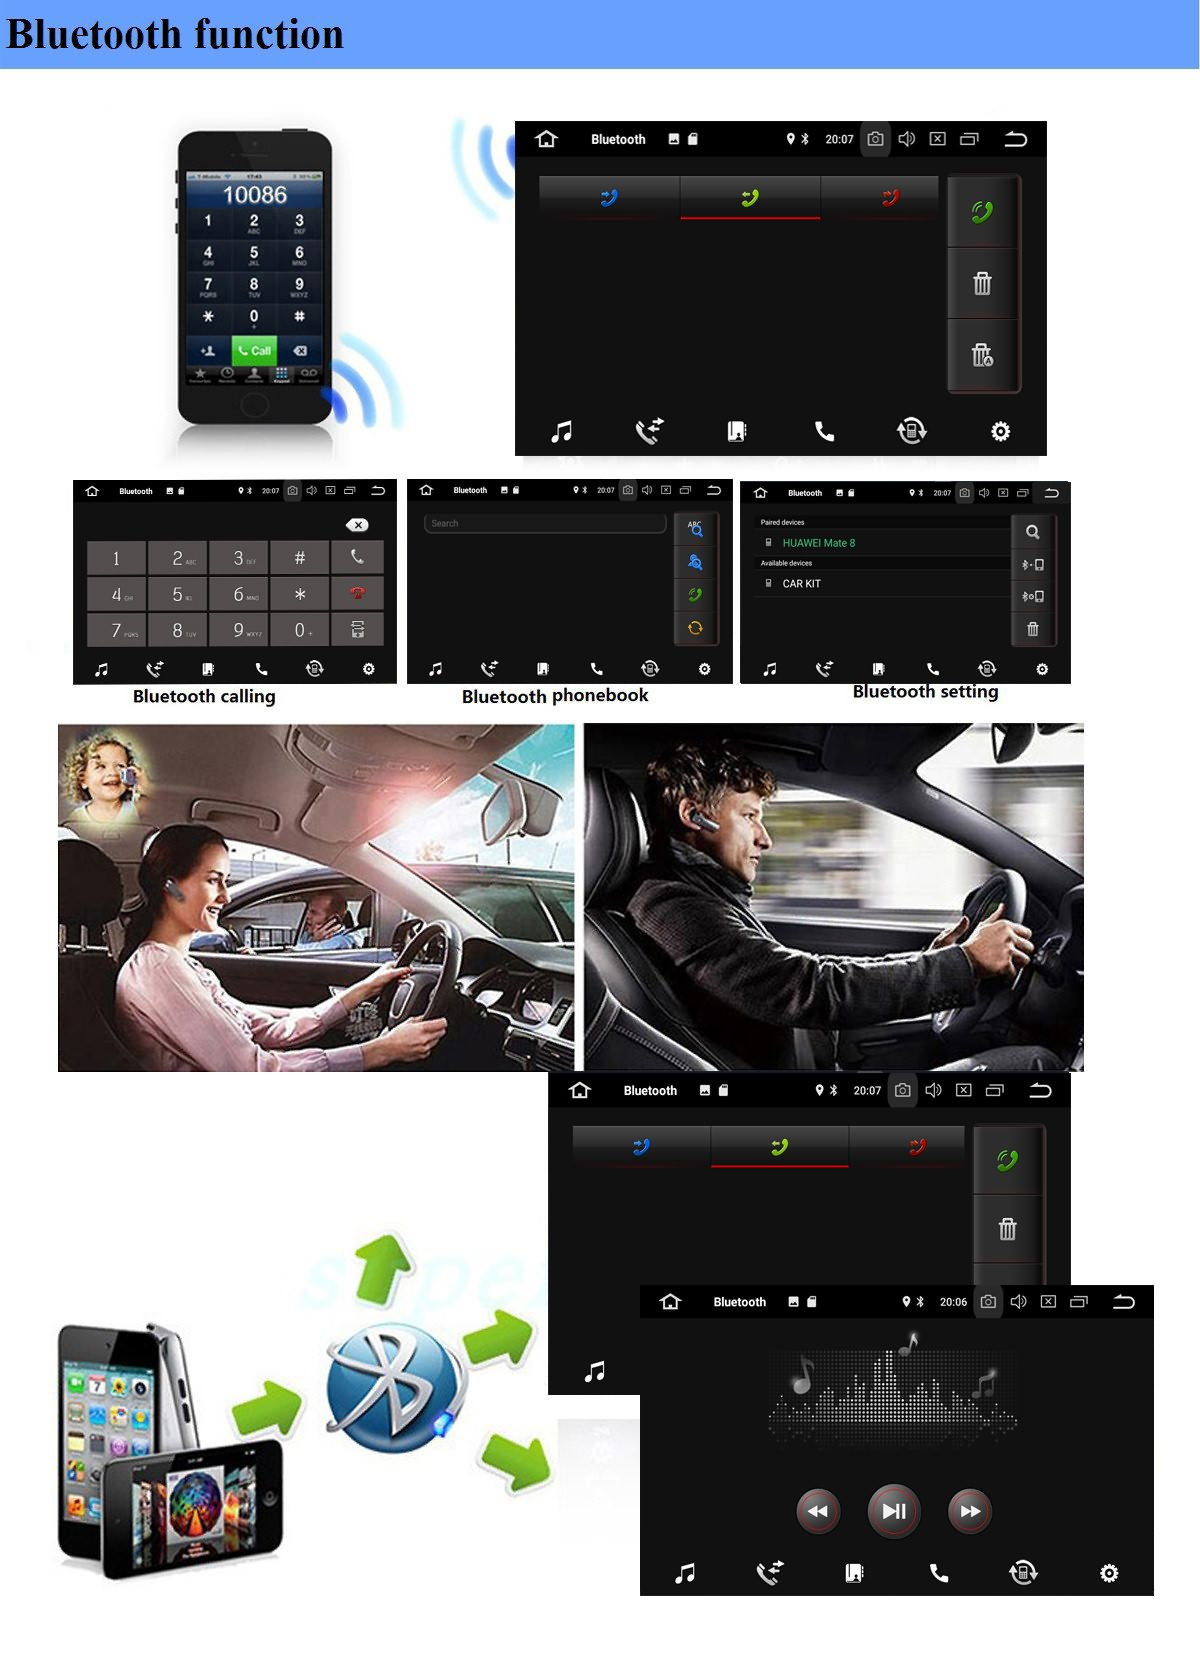 hight resolution of package car dvd player x1 av cable x1 gps antenna x1 power cable x1 8g map card x1 usb cable x1 installation tools x2 english user instruction x1